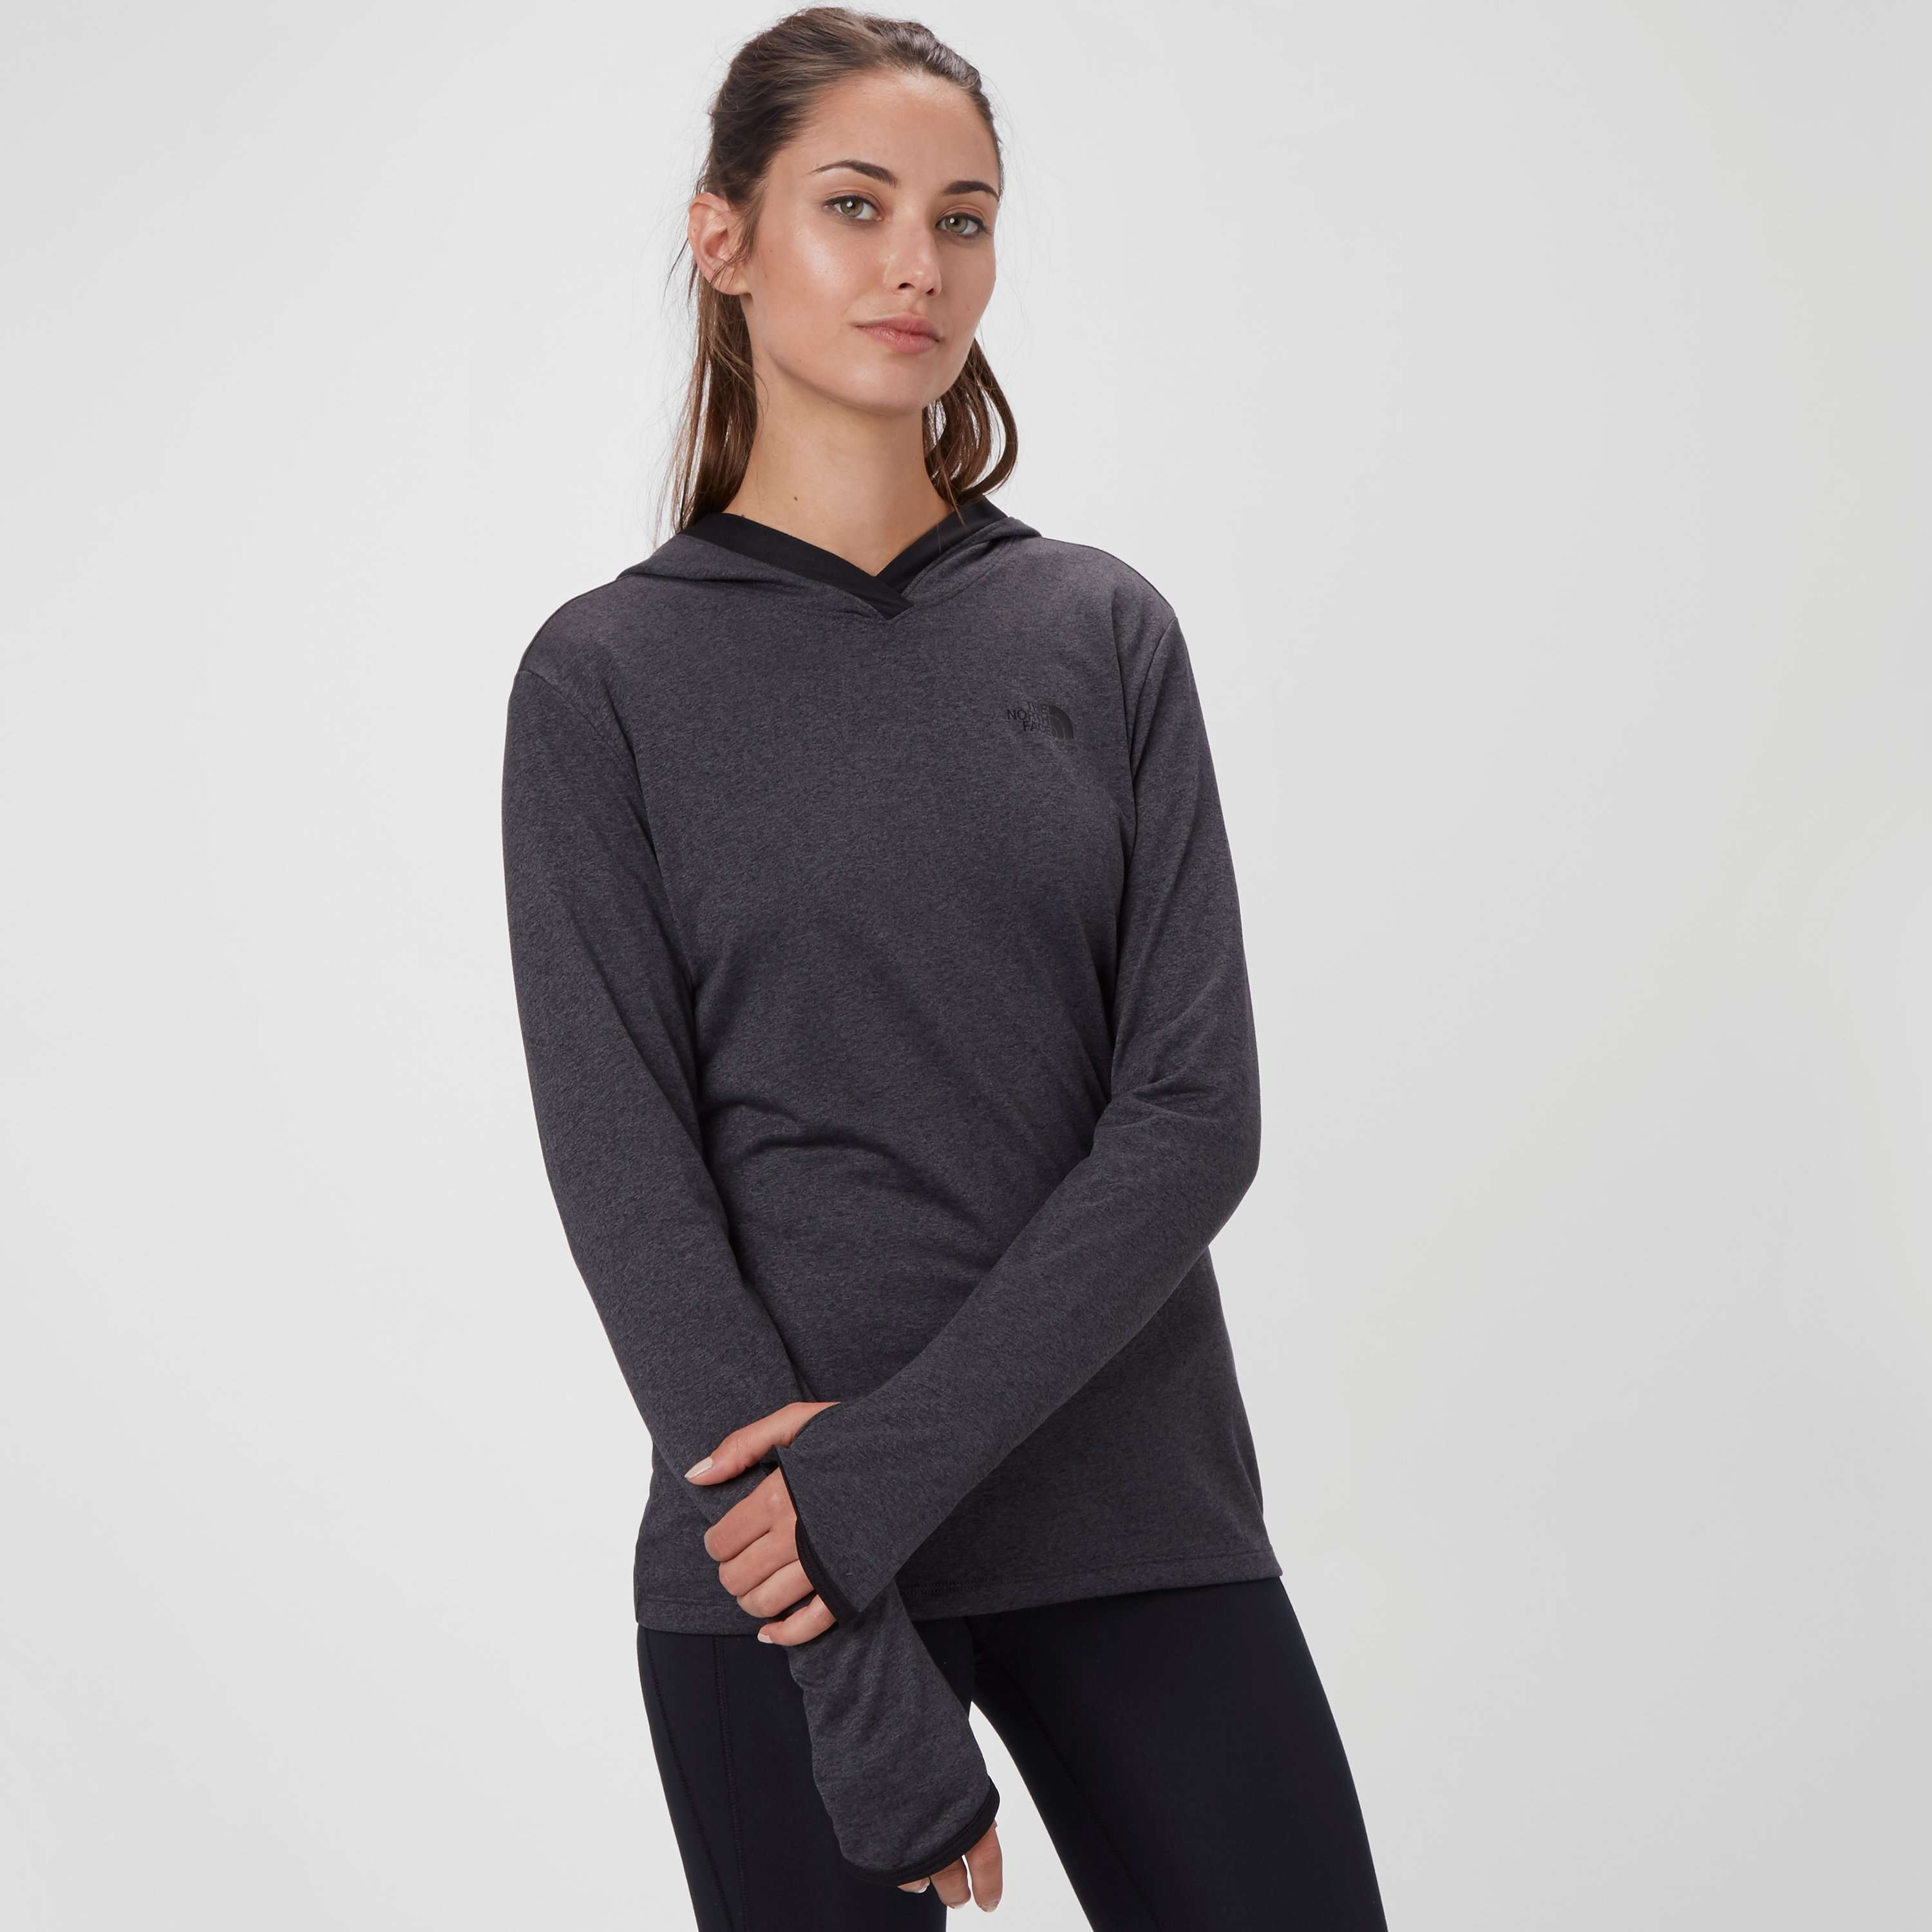 THE NORTH FACE Women's Reactor Hooded Jersey